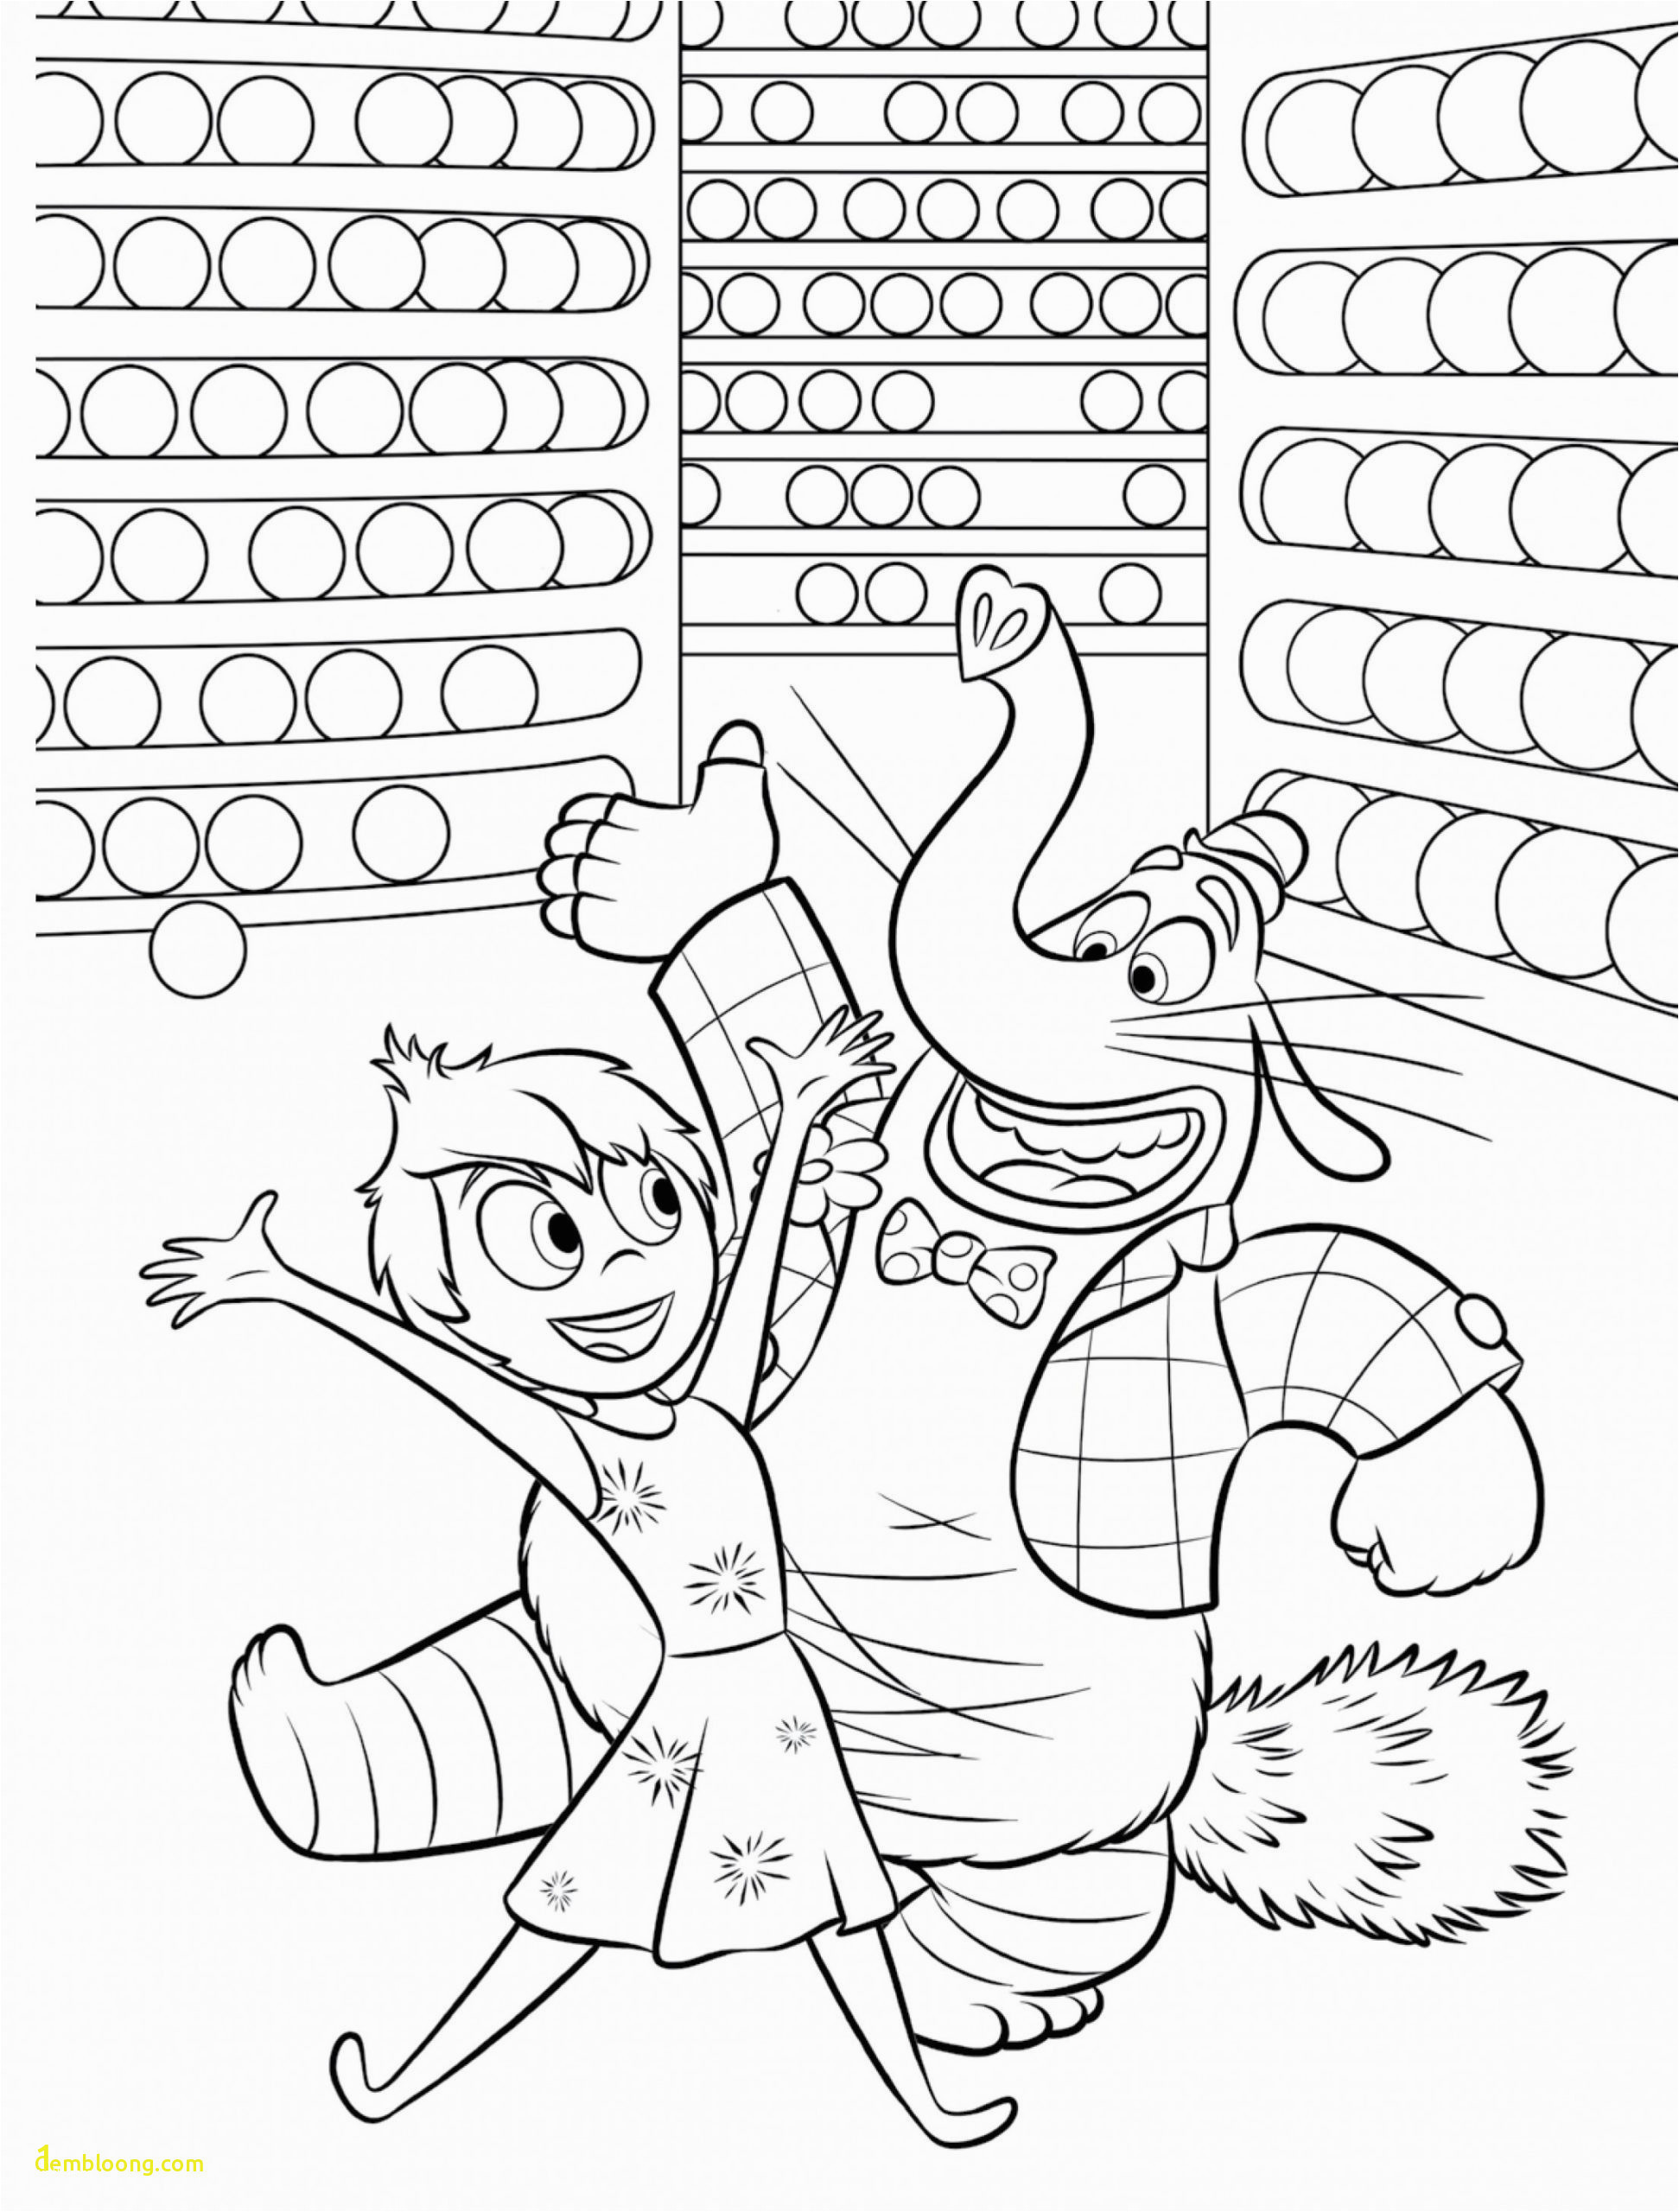 simple coloring pages for preschoolers elegant coloring pages spring flower coloring pages spring flower of simple coloring pages for preschoolers